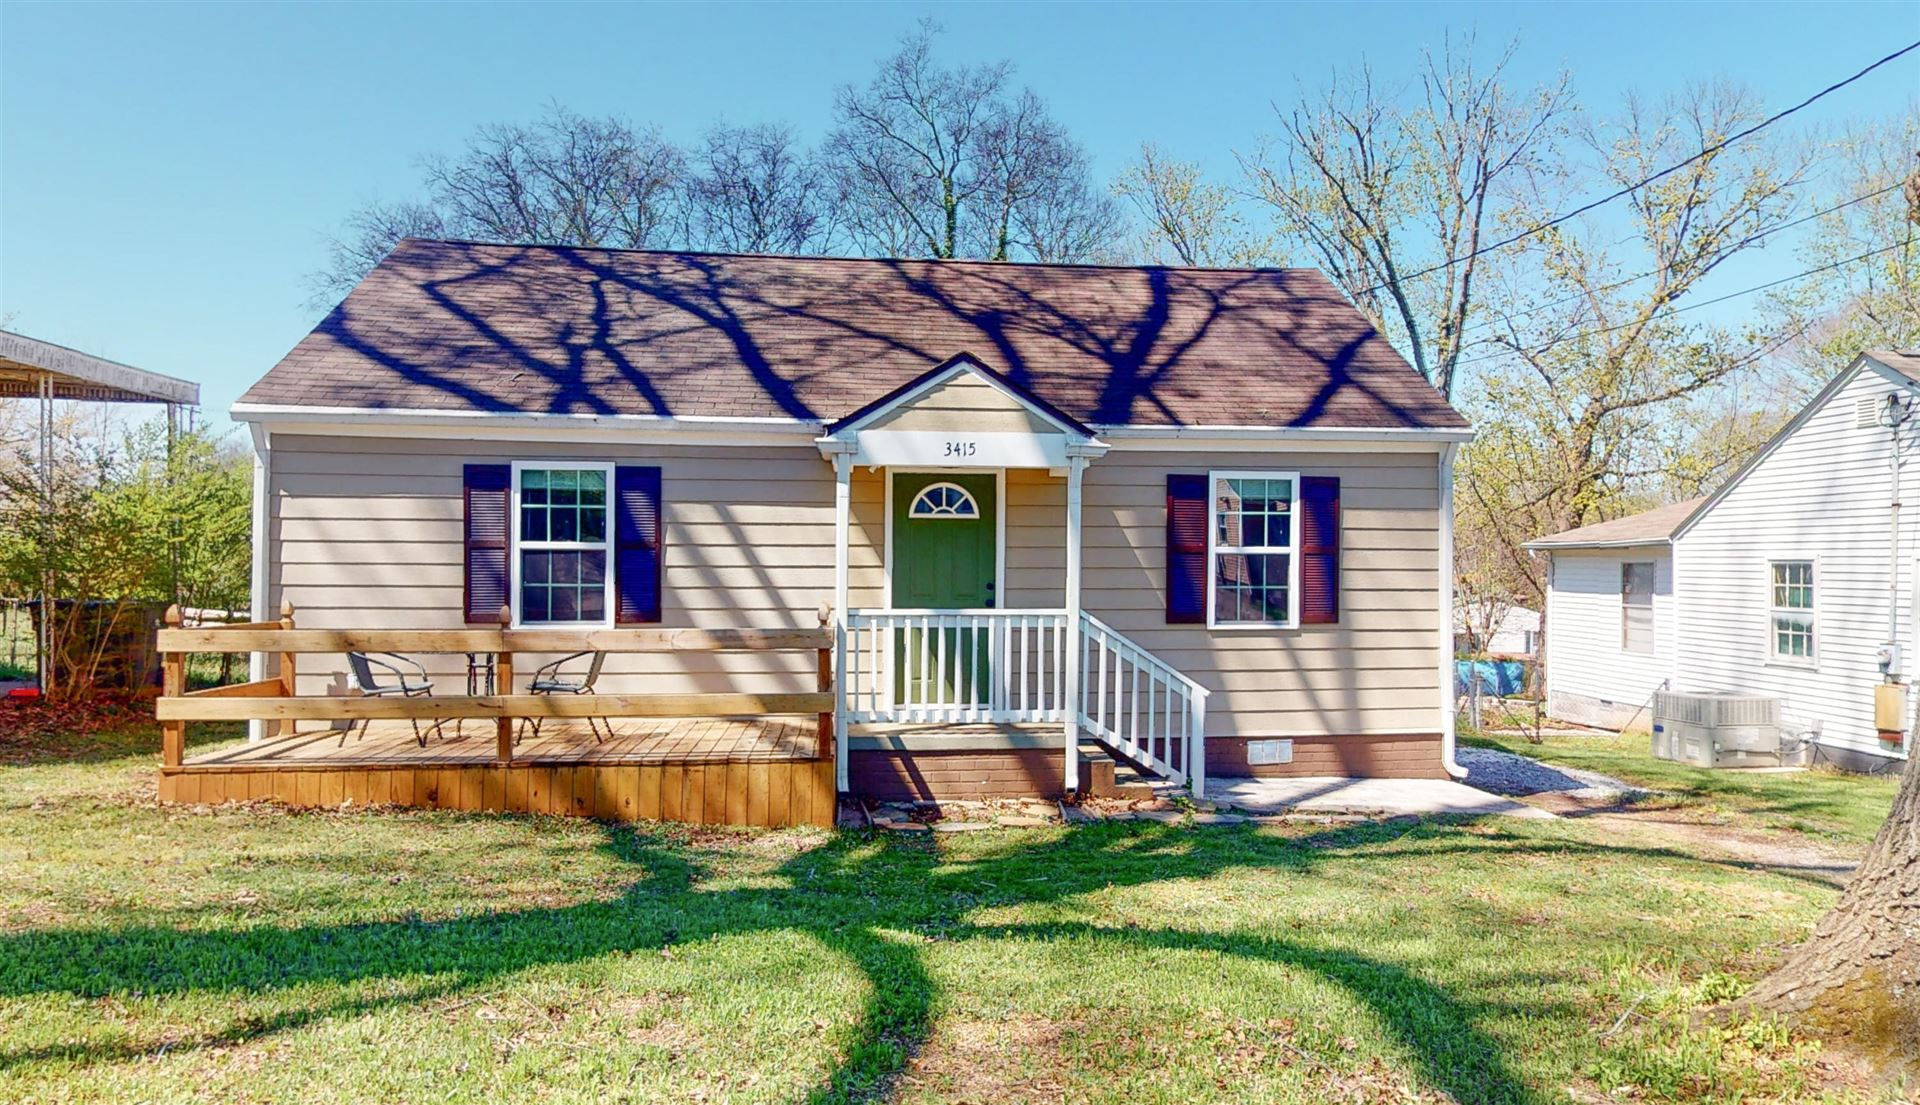 Photo of 3415 Feathers St, Knoxville, TN 37920 (MLS # 1162526)